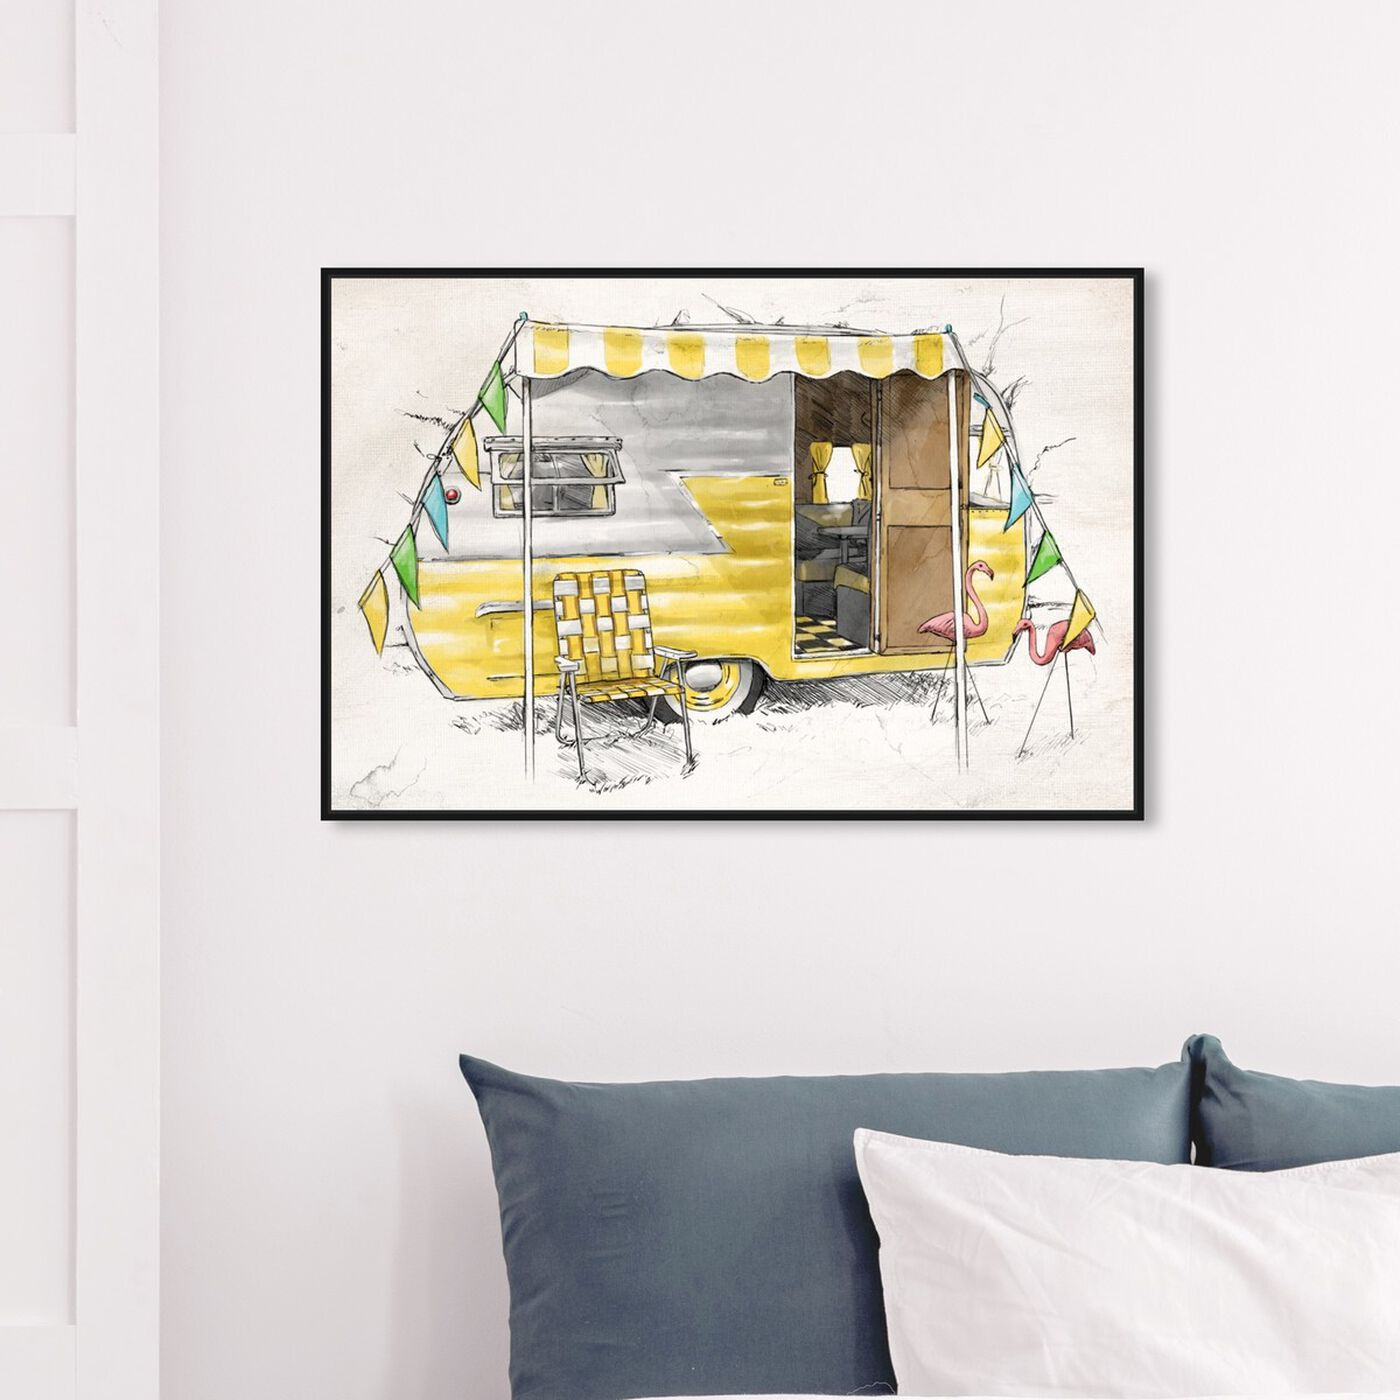 Hanging view of Yellow Camper featuring entertainment and hobbies and camping art.